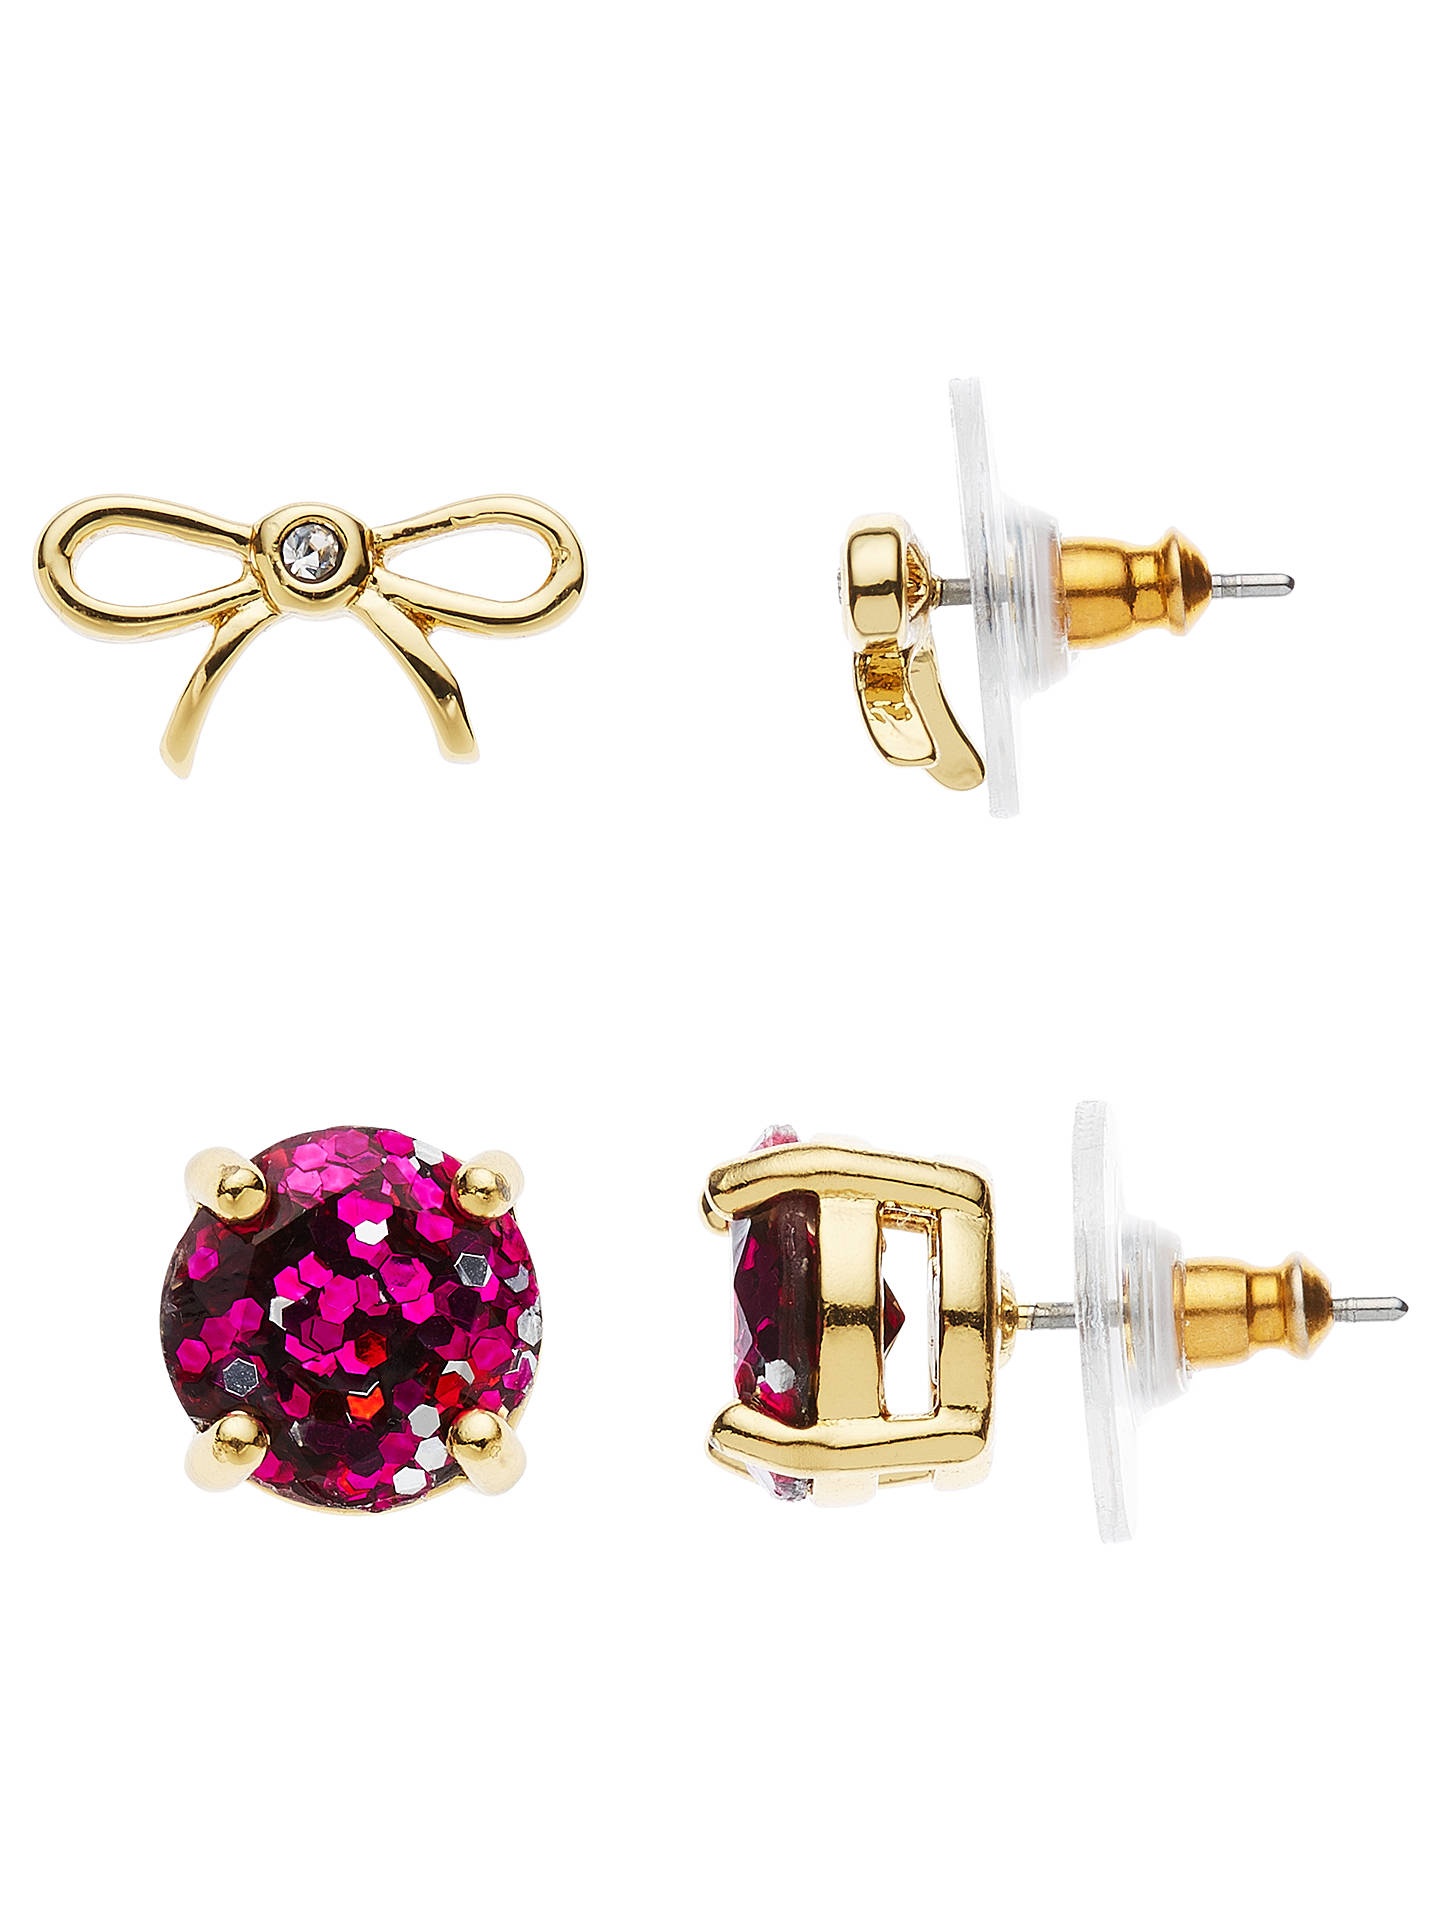 kate spade new york Bow and Glitter Stud Earrings Set, Gold/Pink at ...